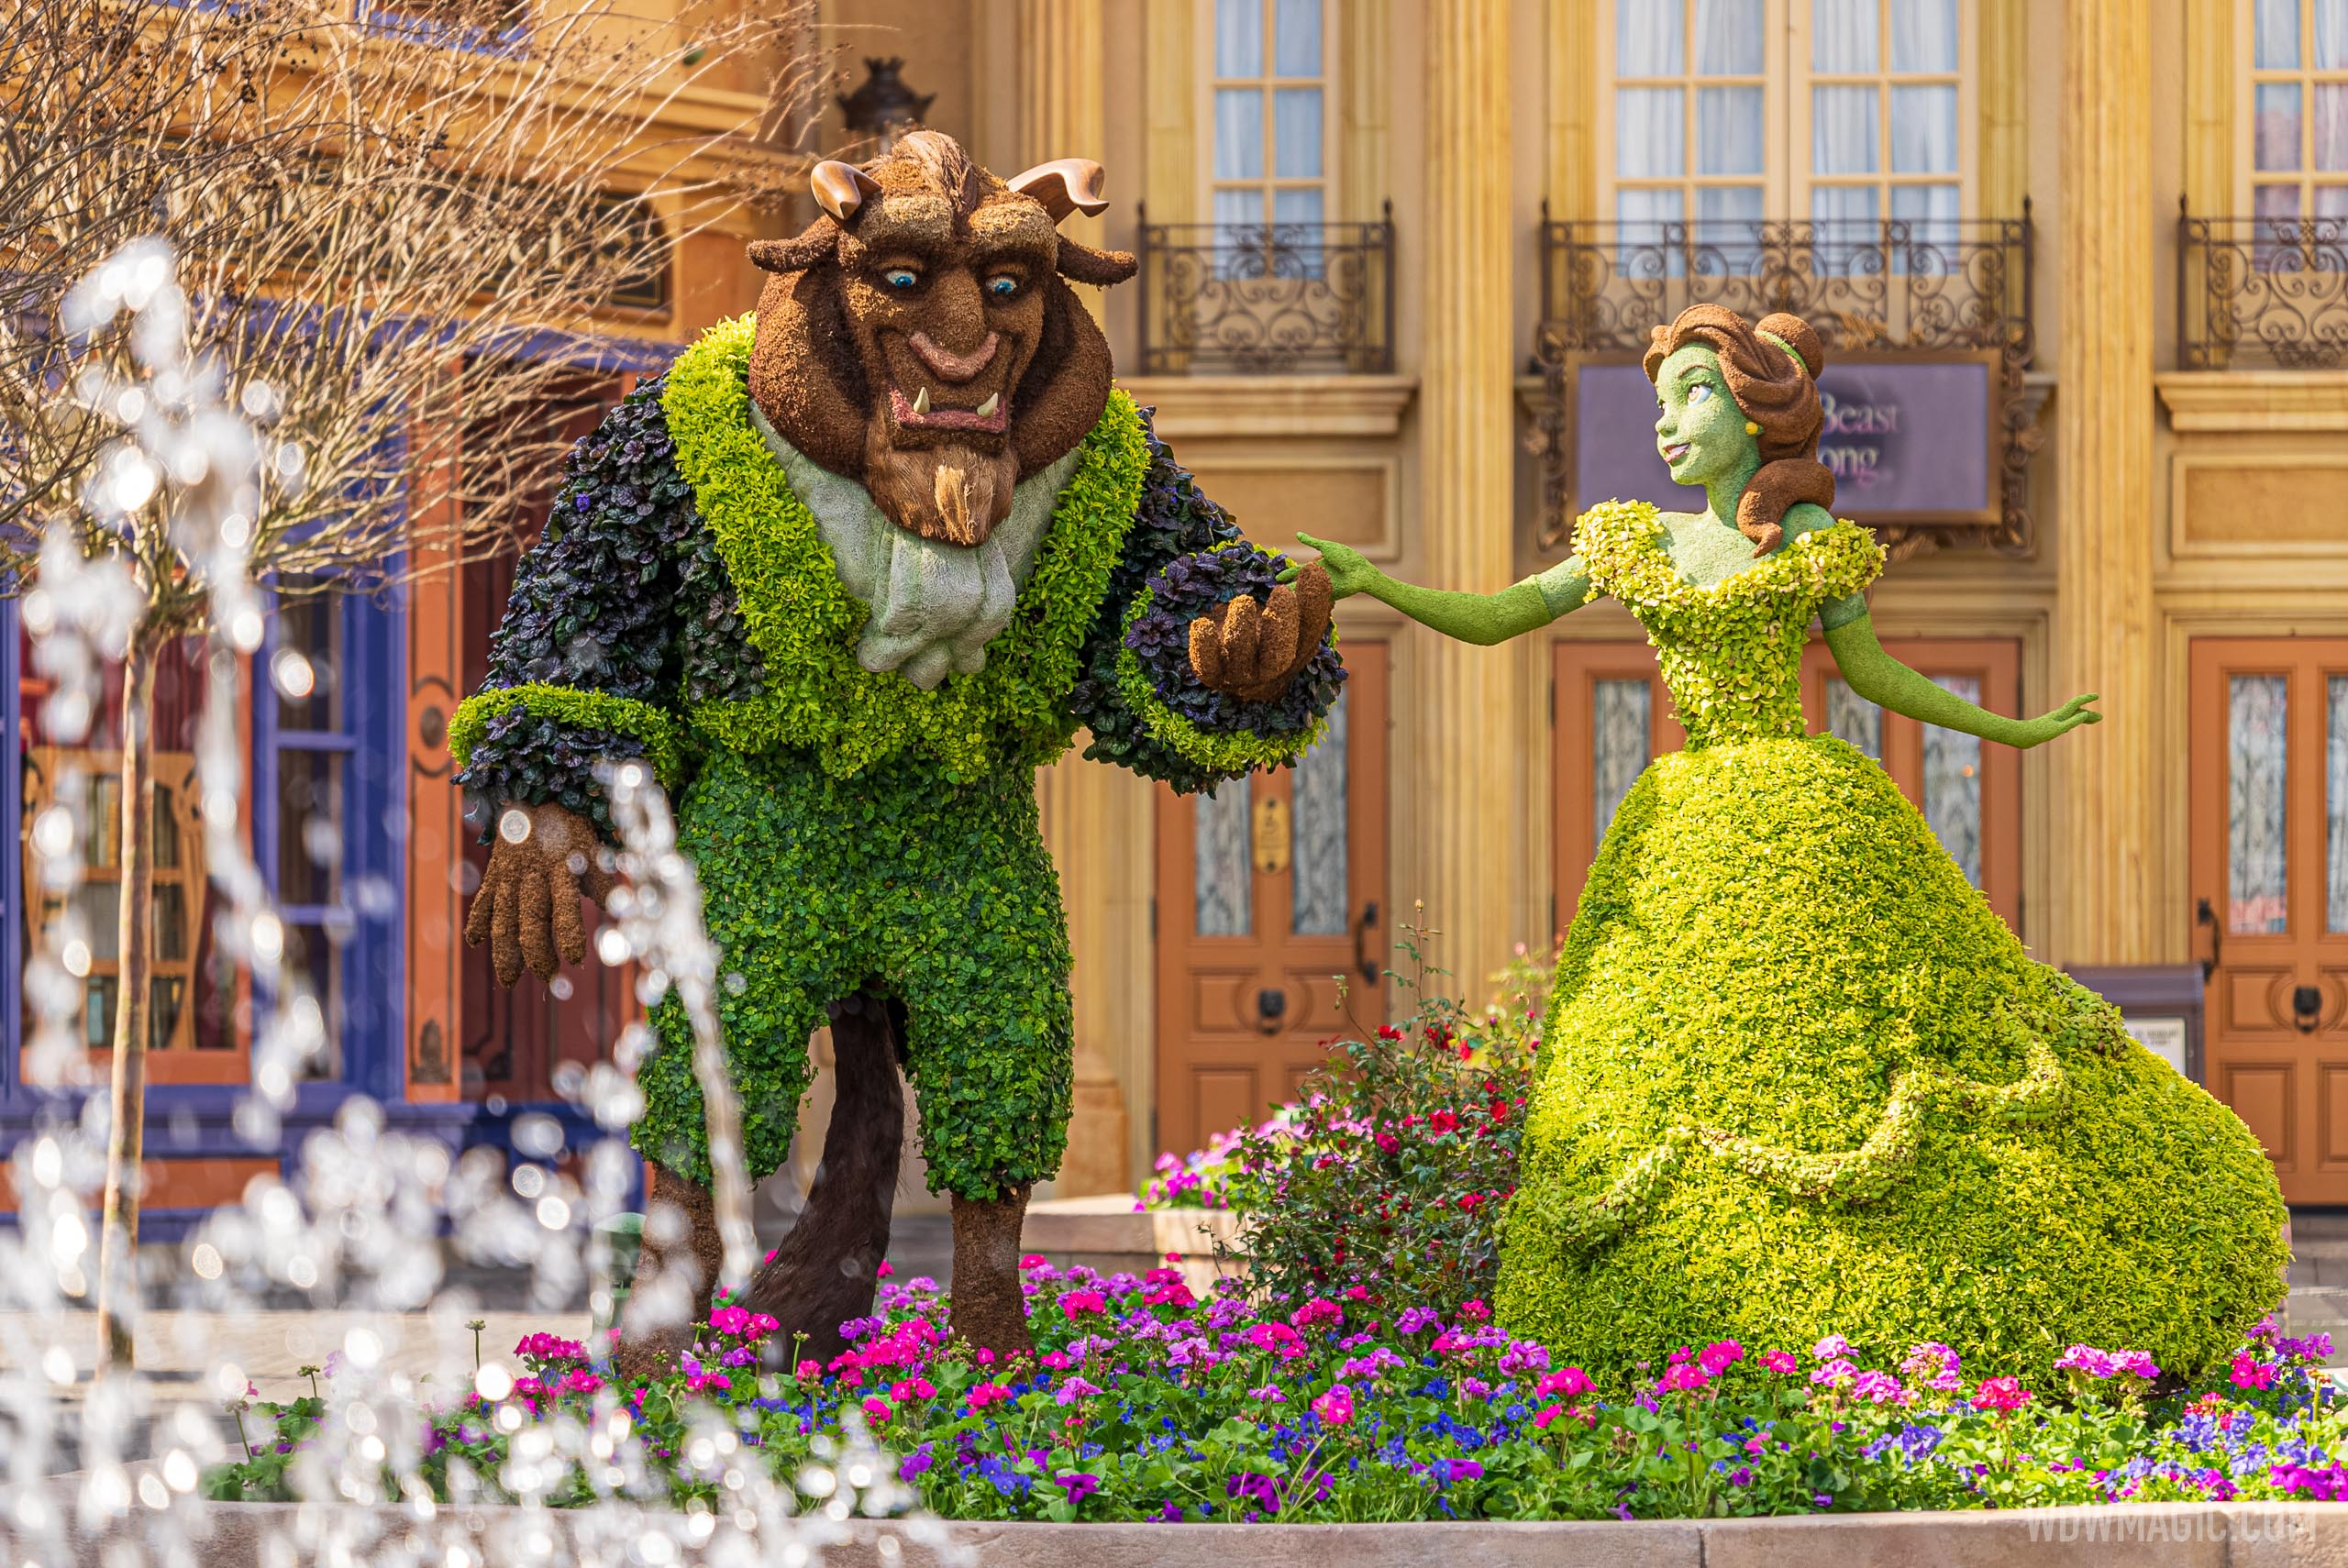 Beauty and the Beast – France Pavilion